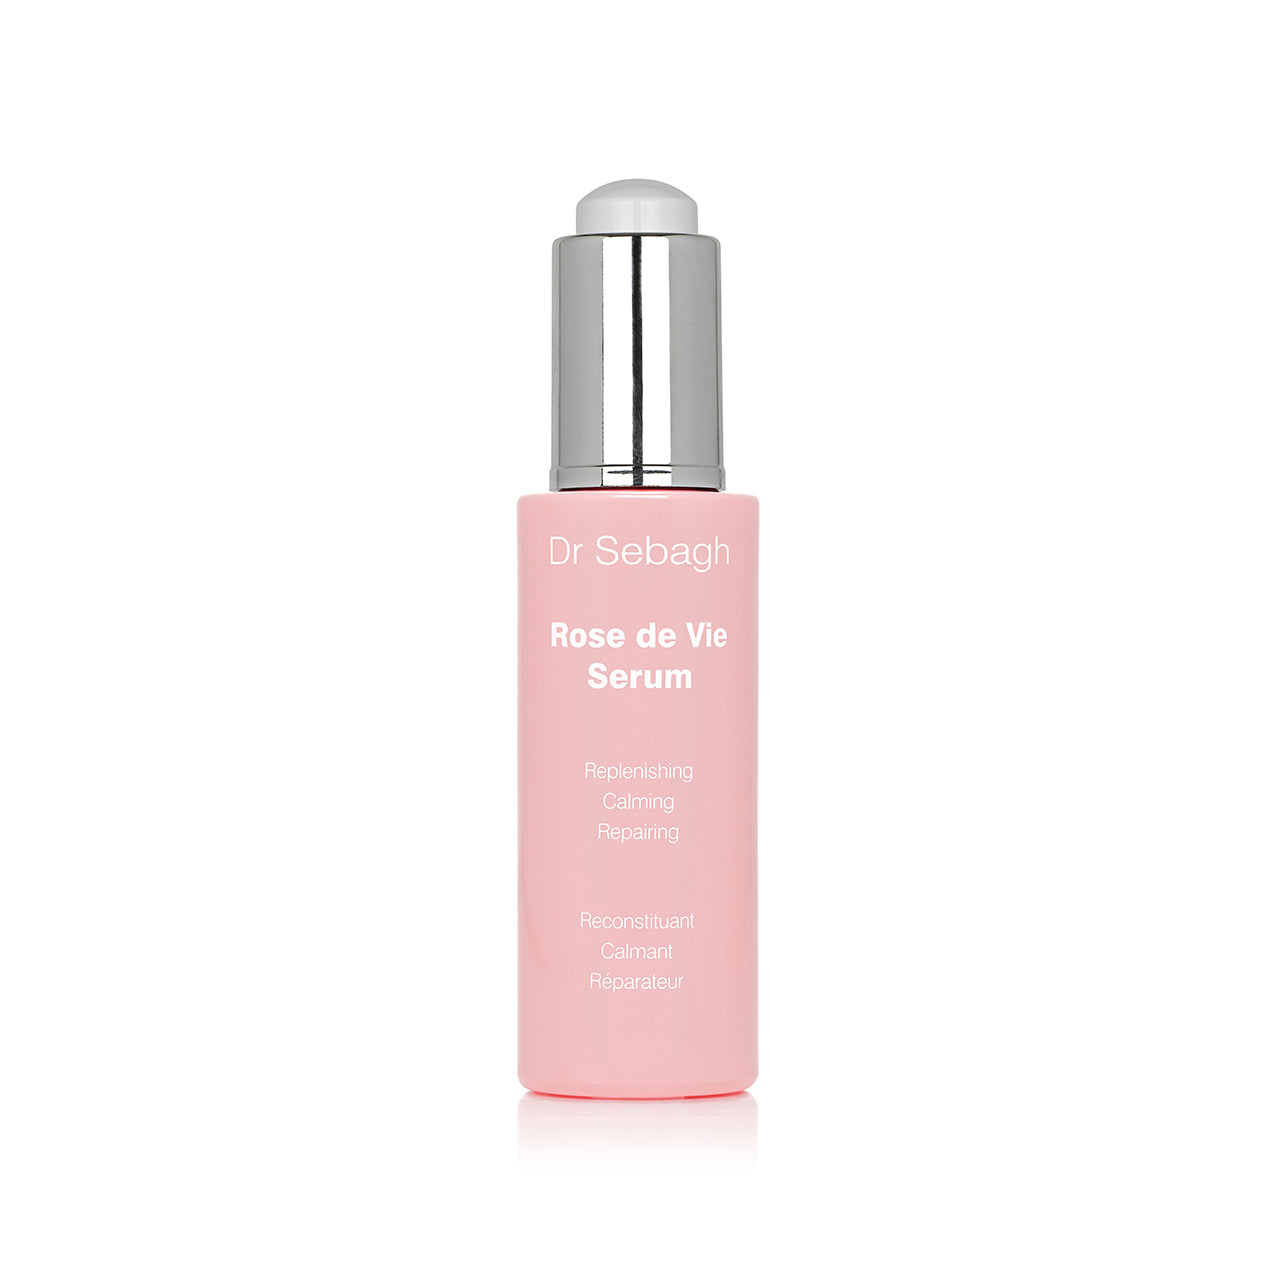 DR. SEBAGH - Rose de Vie Serum - 30ml